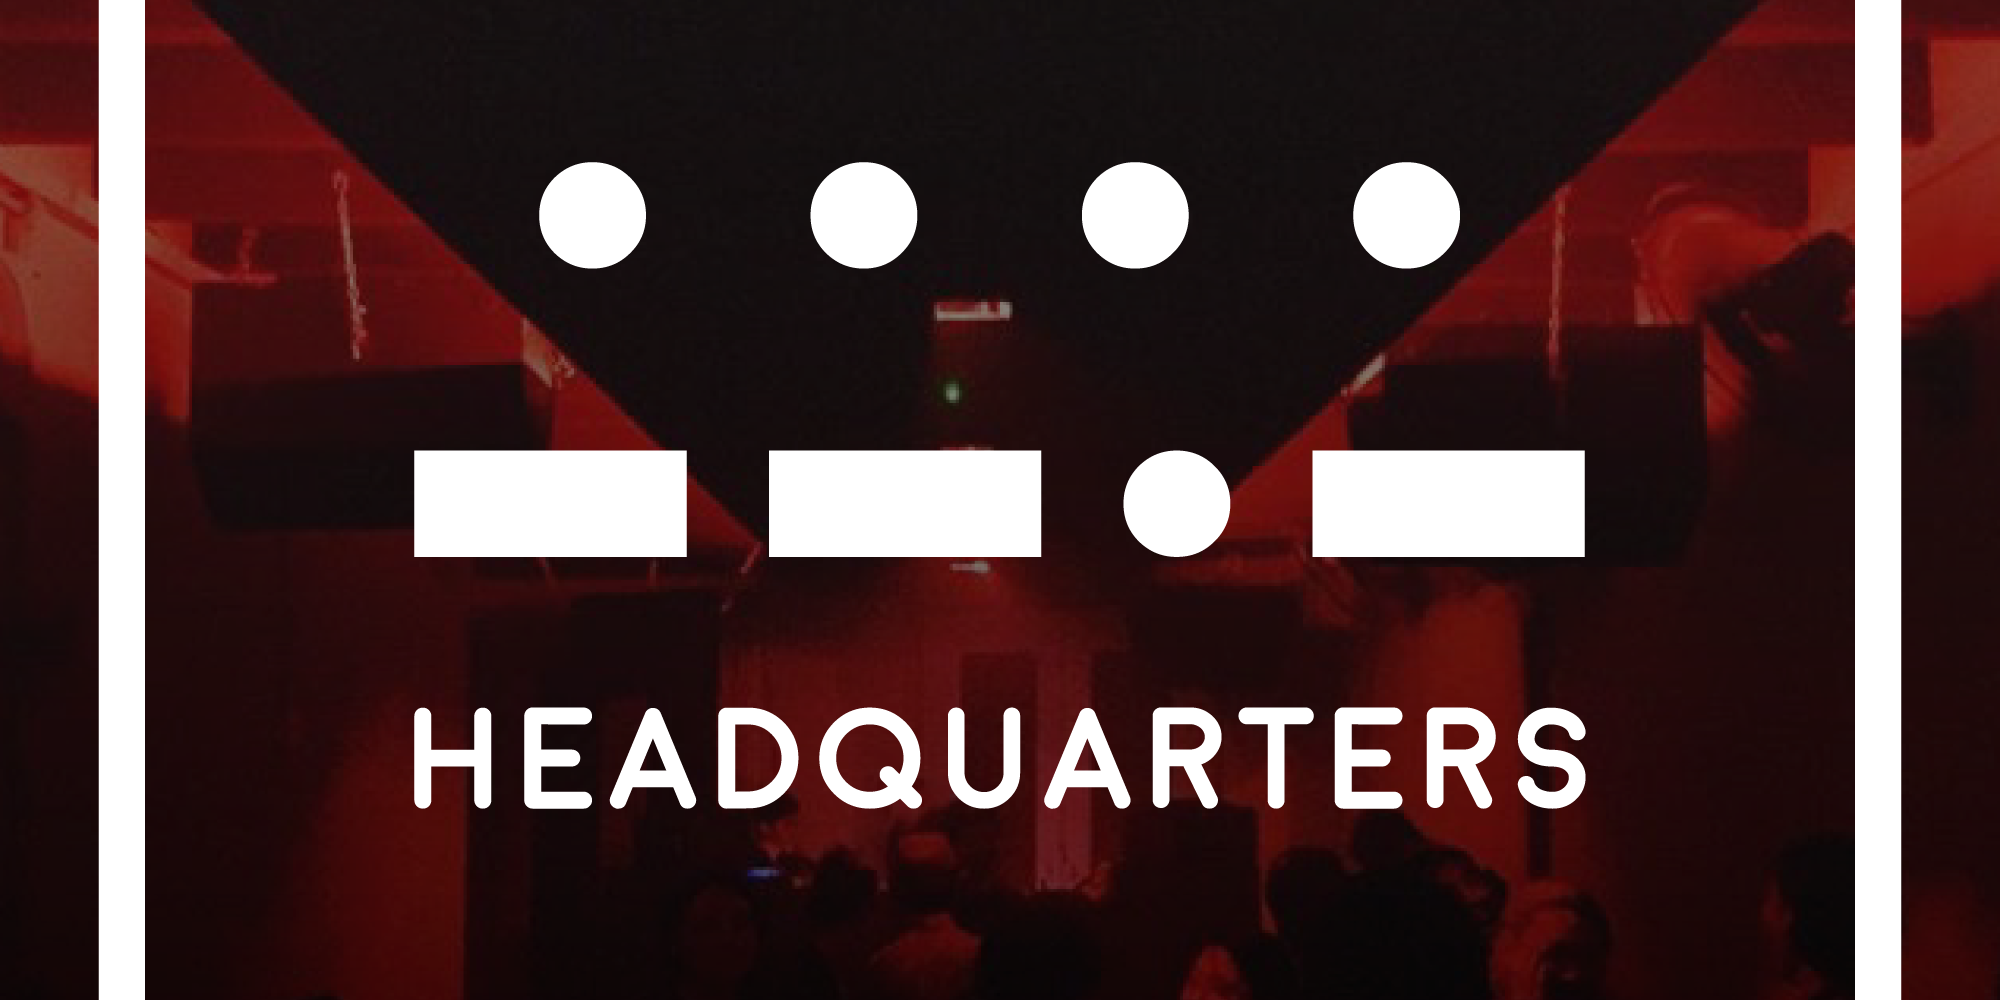 Headquarters by The Council - Singapore's newest house & techno club now open